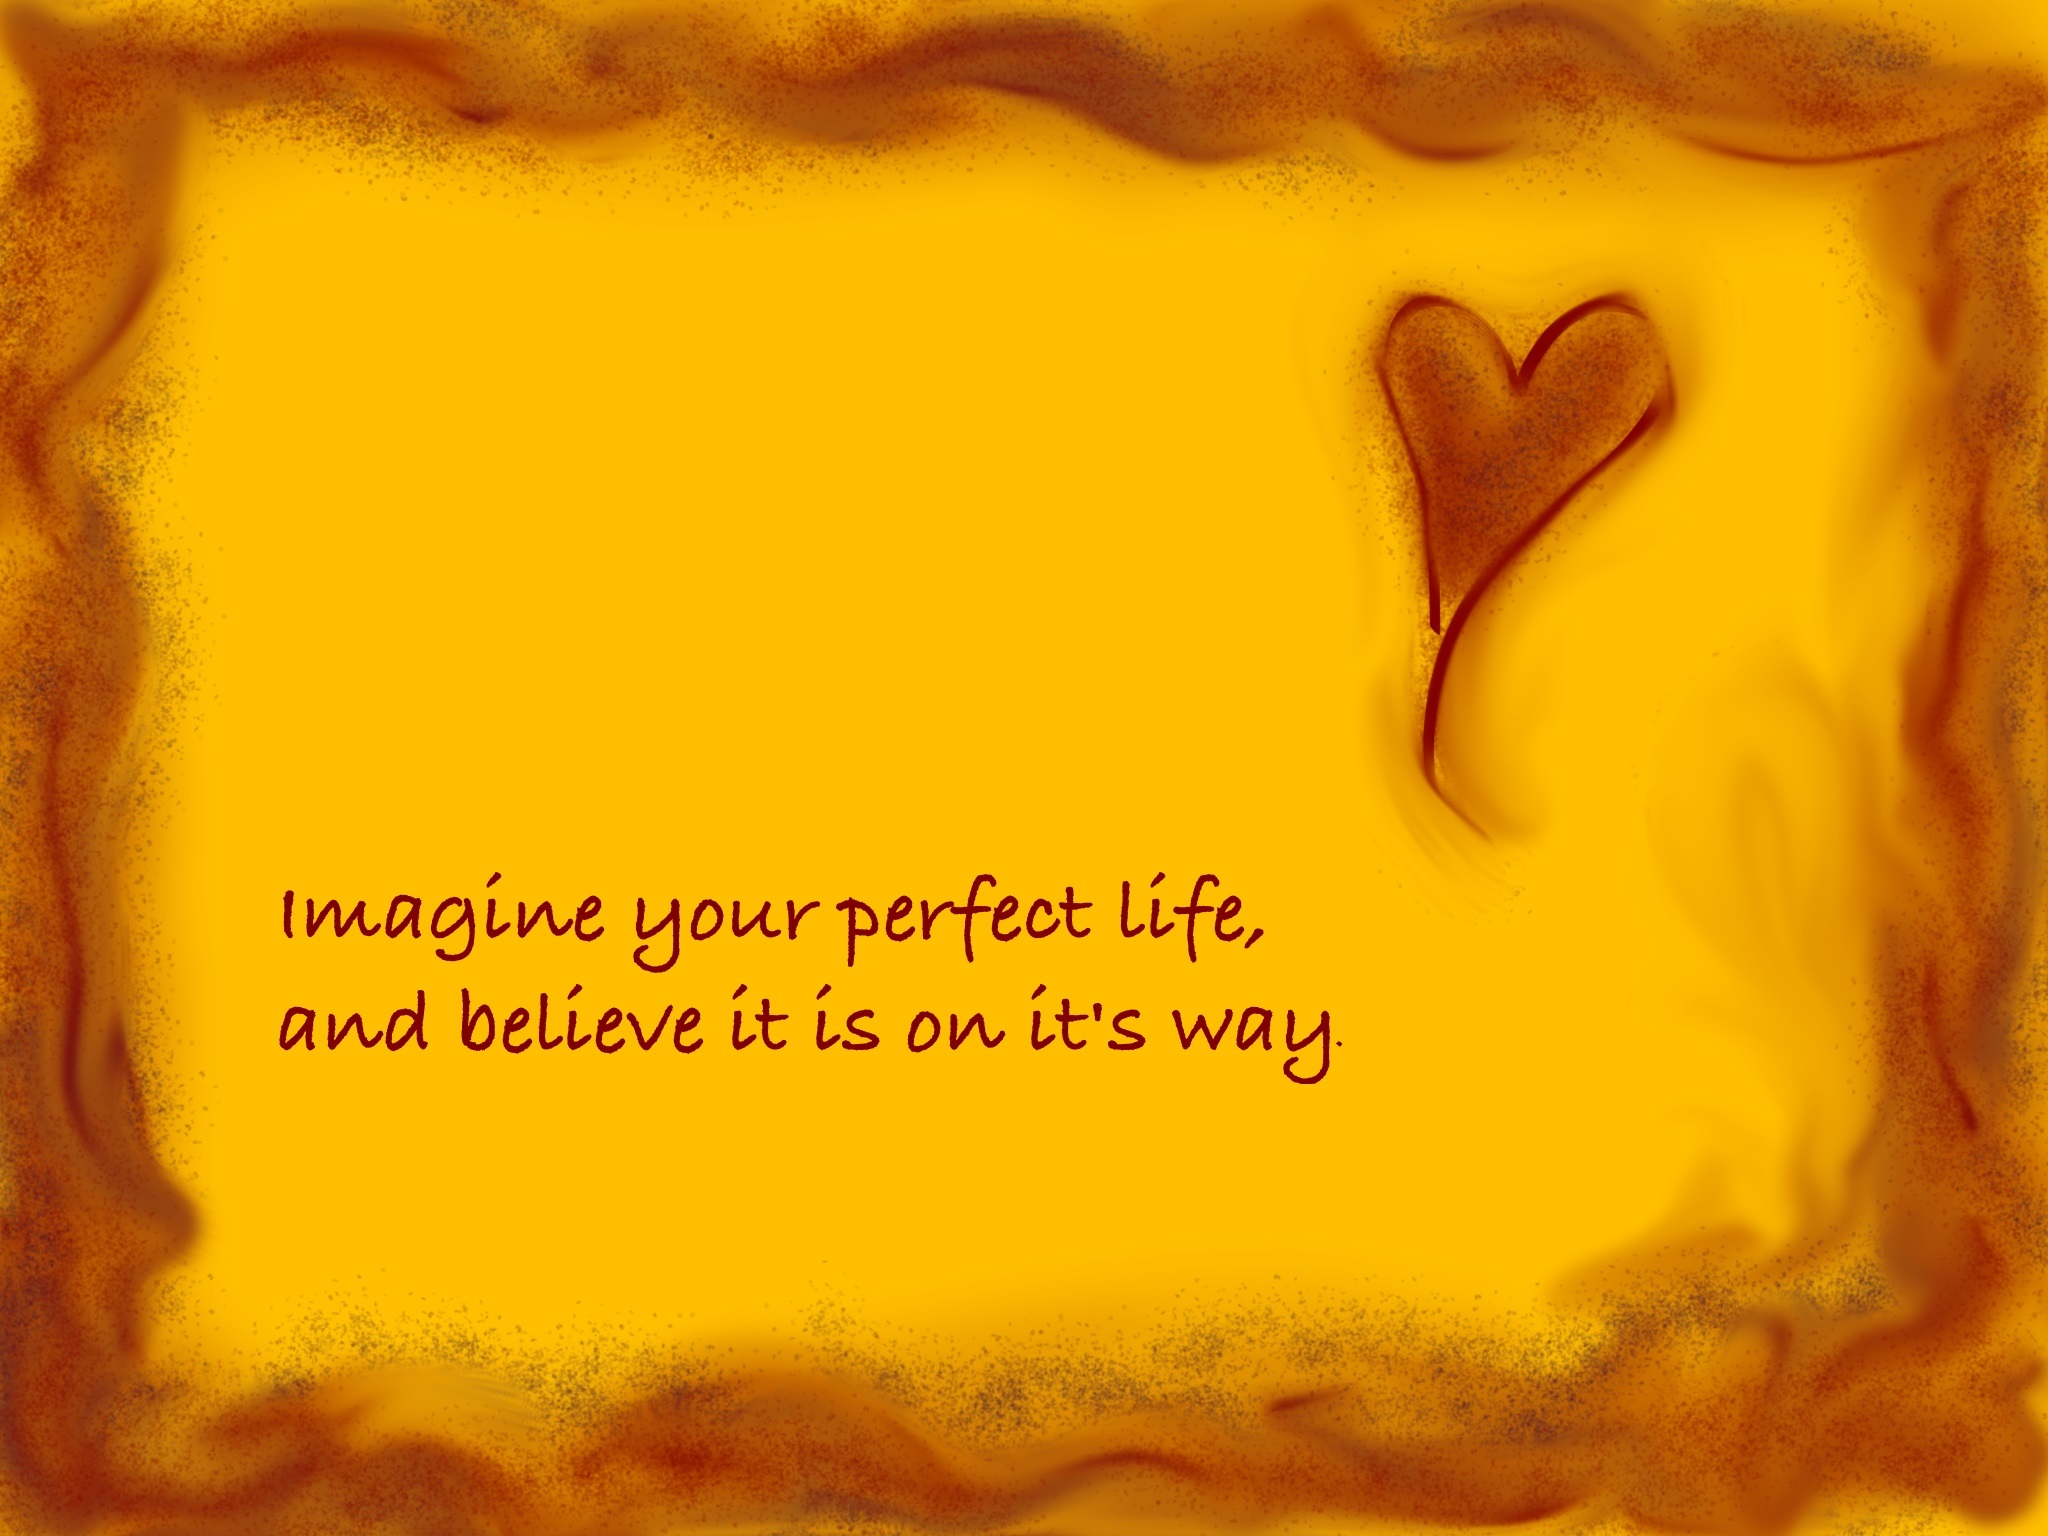 """Quote on painted background: """"Imagine your perfect life, and believe it is on it's way."""""""